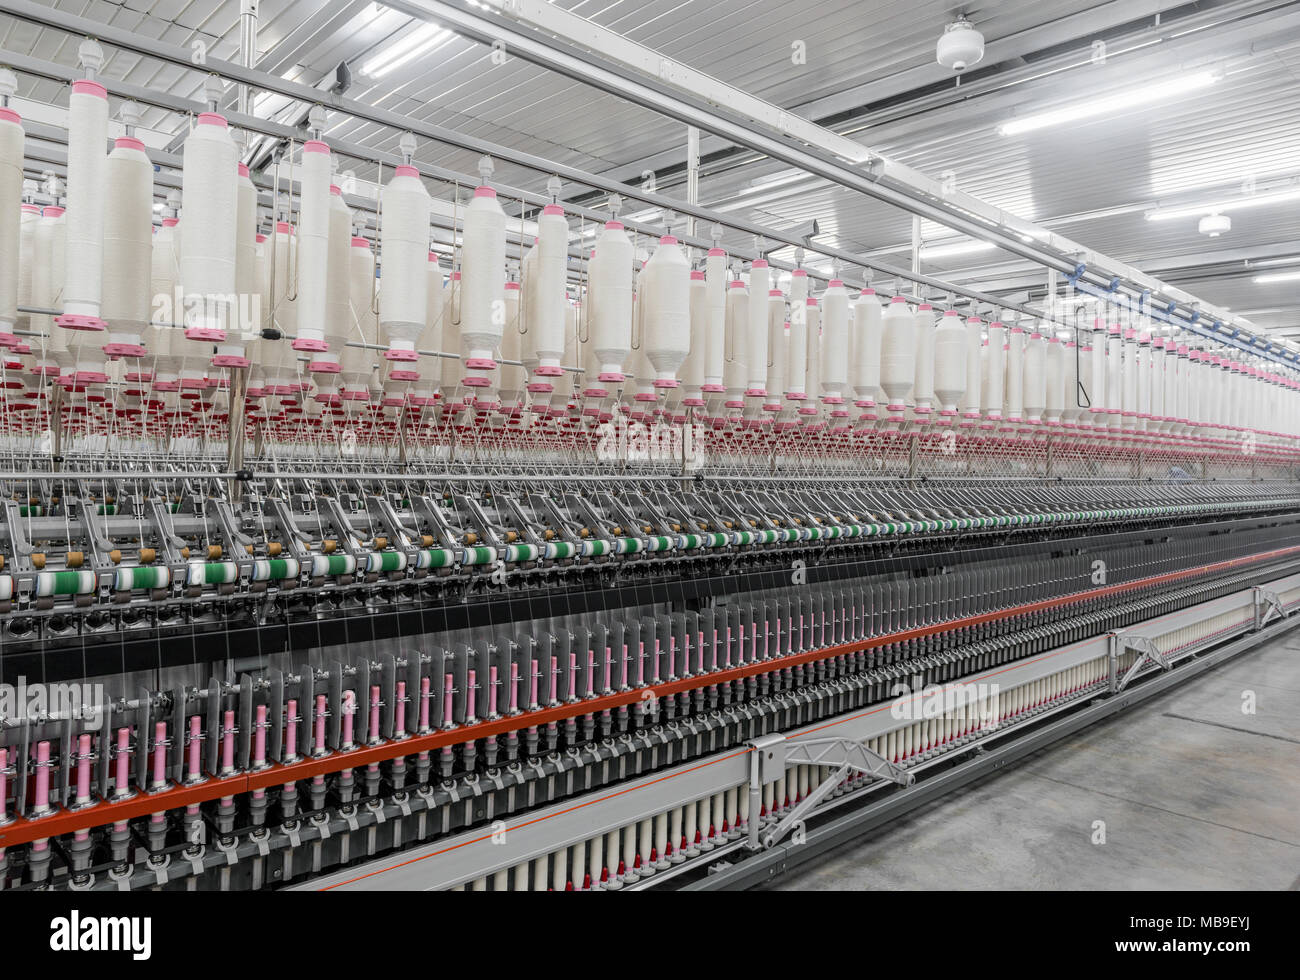 Machinery and equipment in the workshop for the production of thread. interior of industrial textile factory Stock Photo